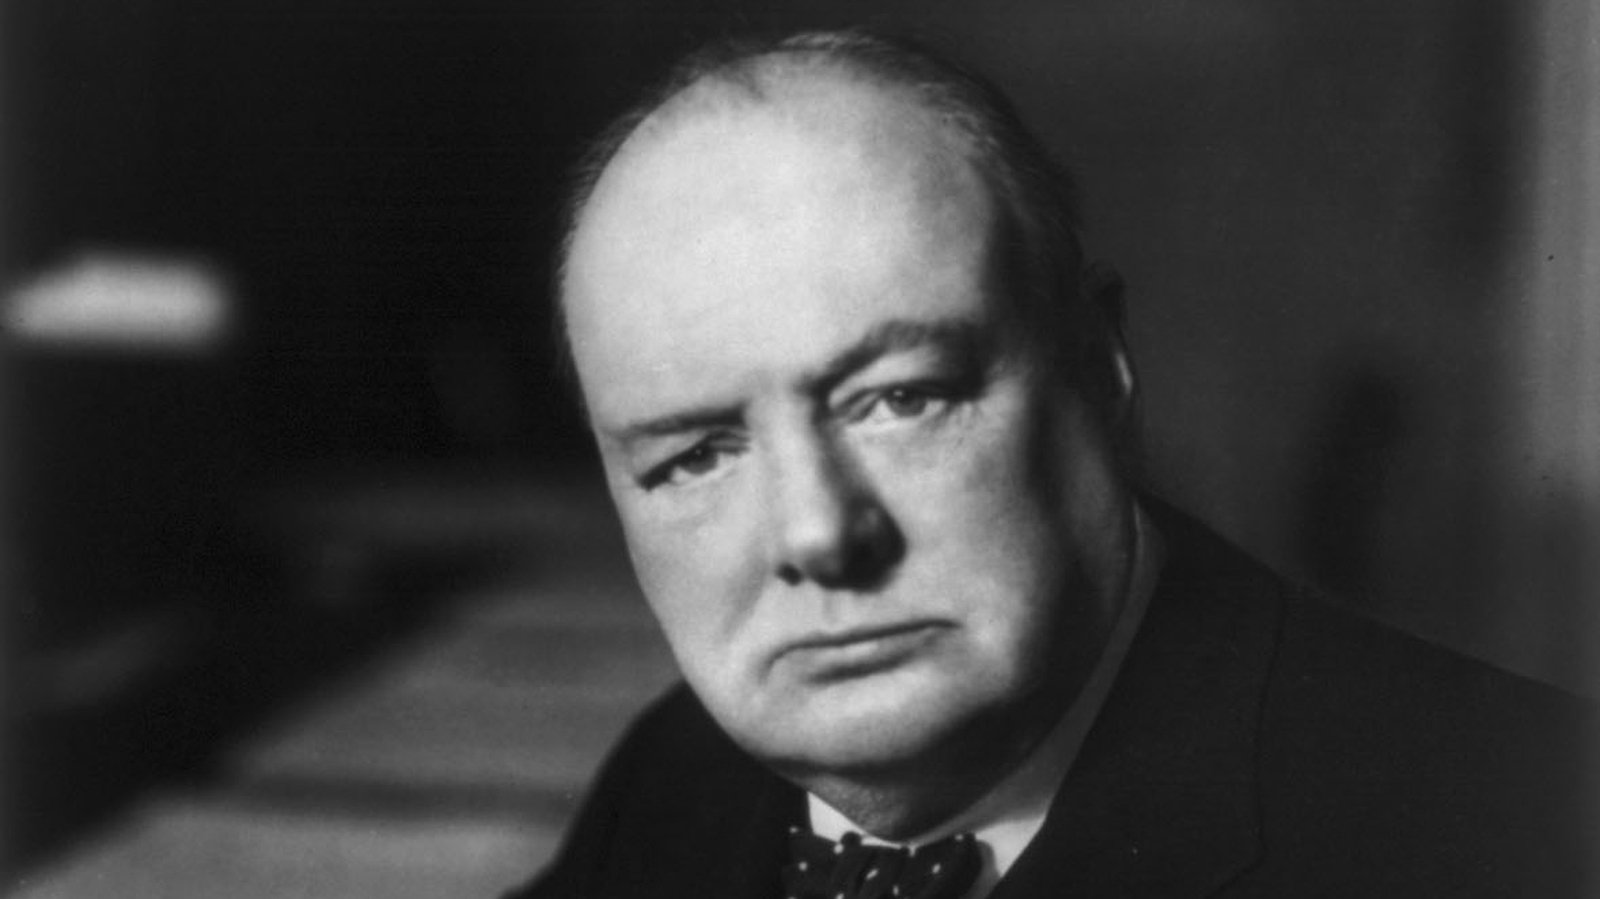 Image - Winston Churchill, who brought Collins and James Craig together in his role as colonial secretary